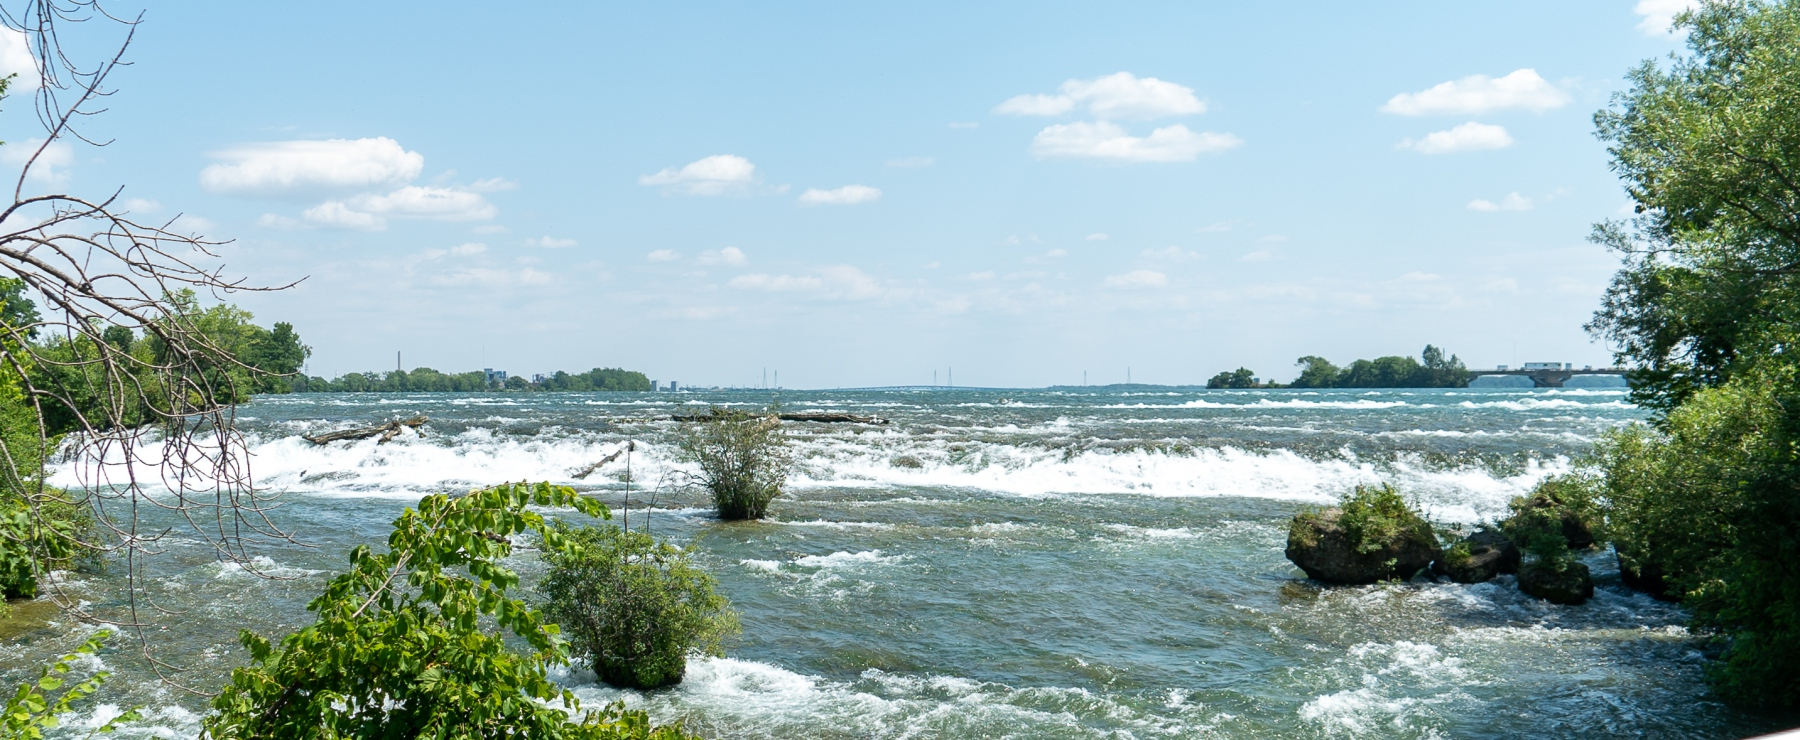 Rapids from the three sisters islands